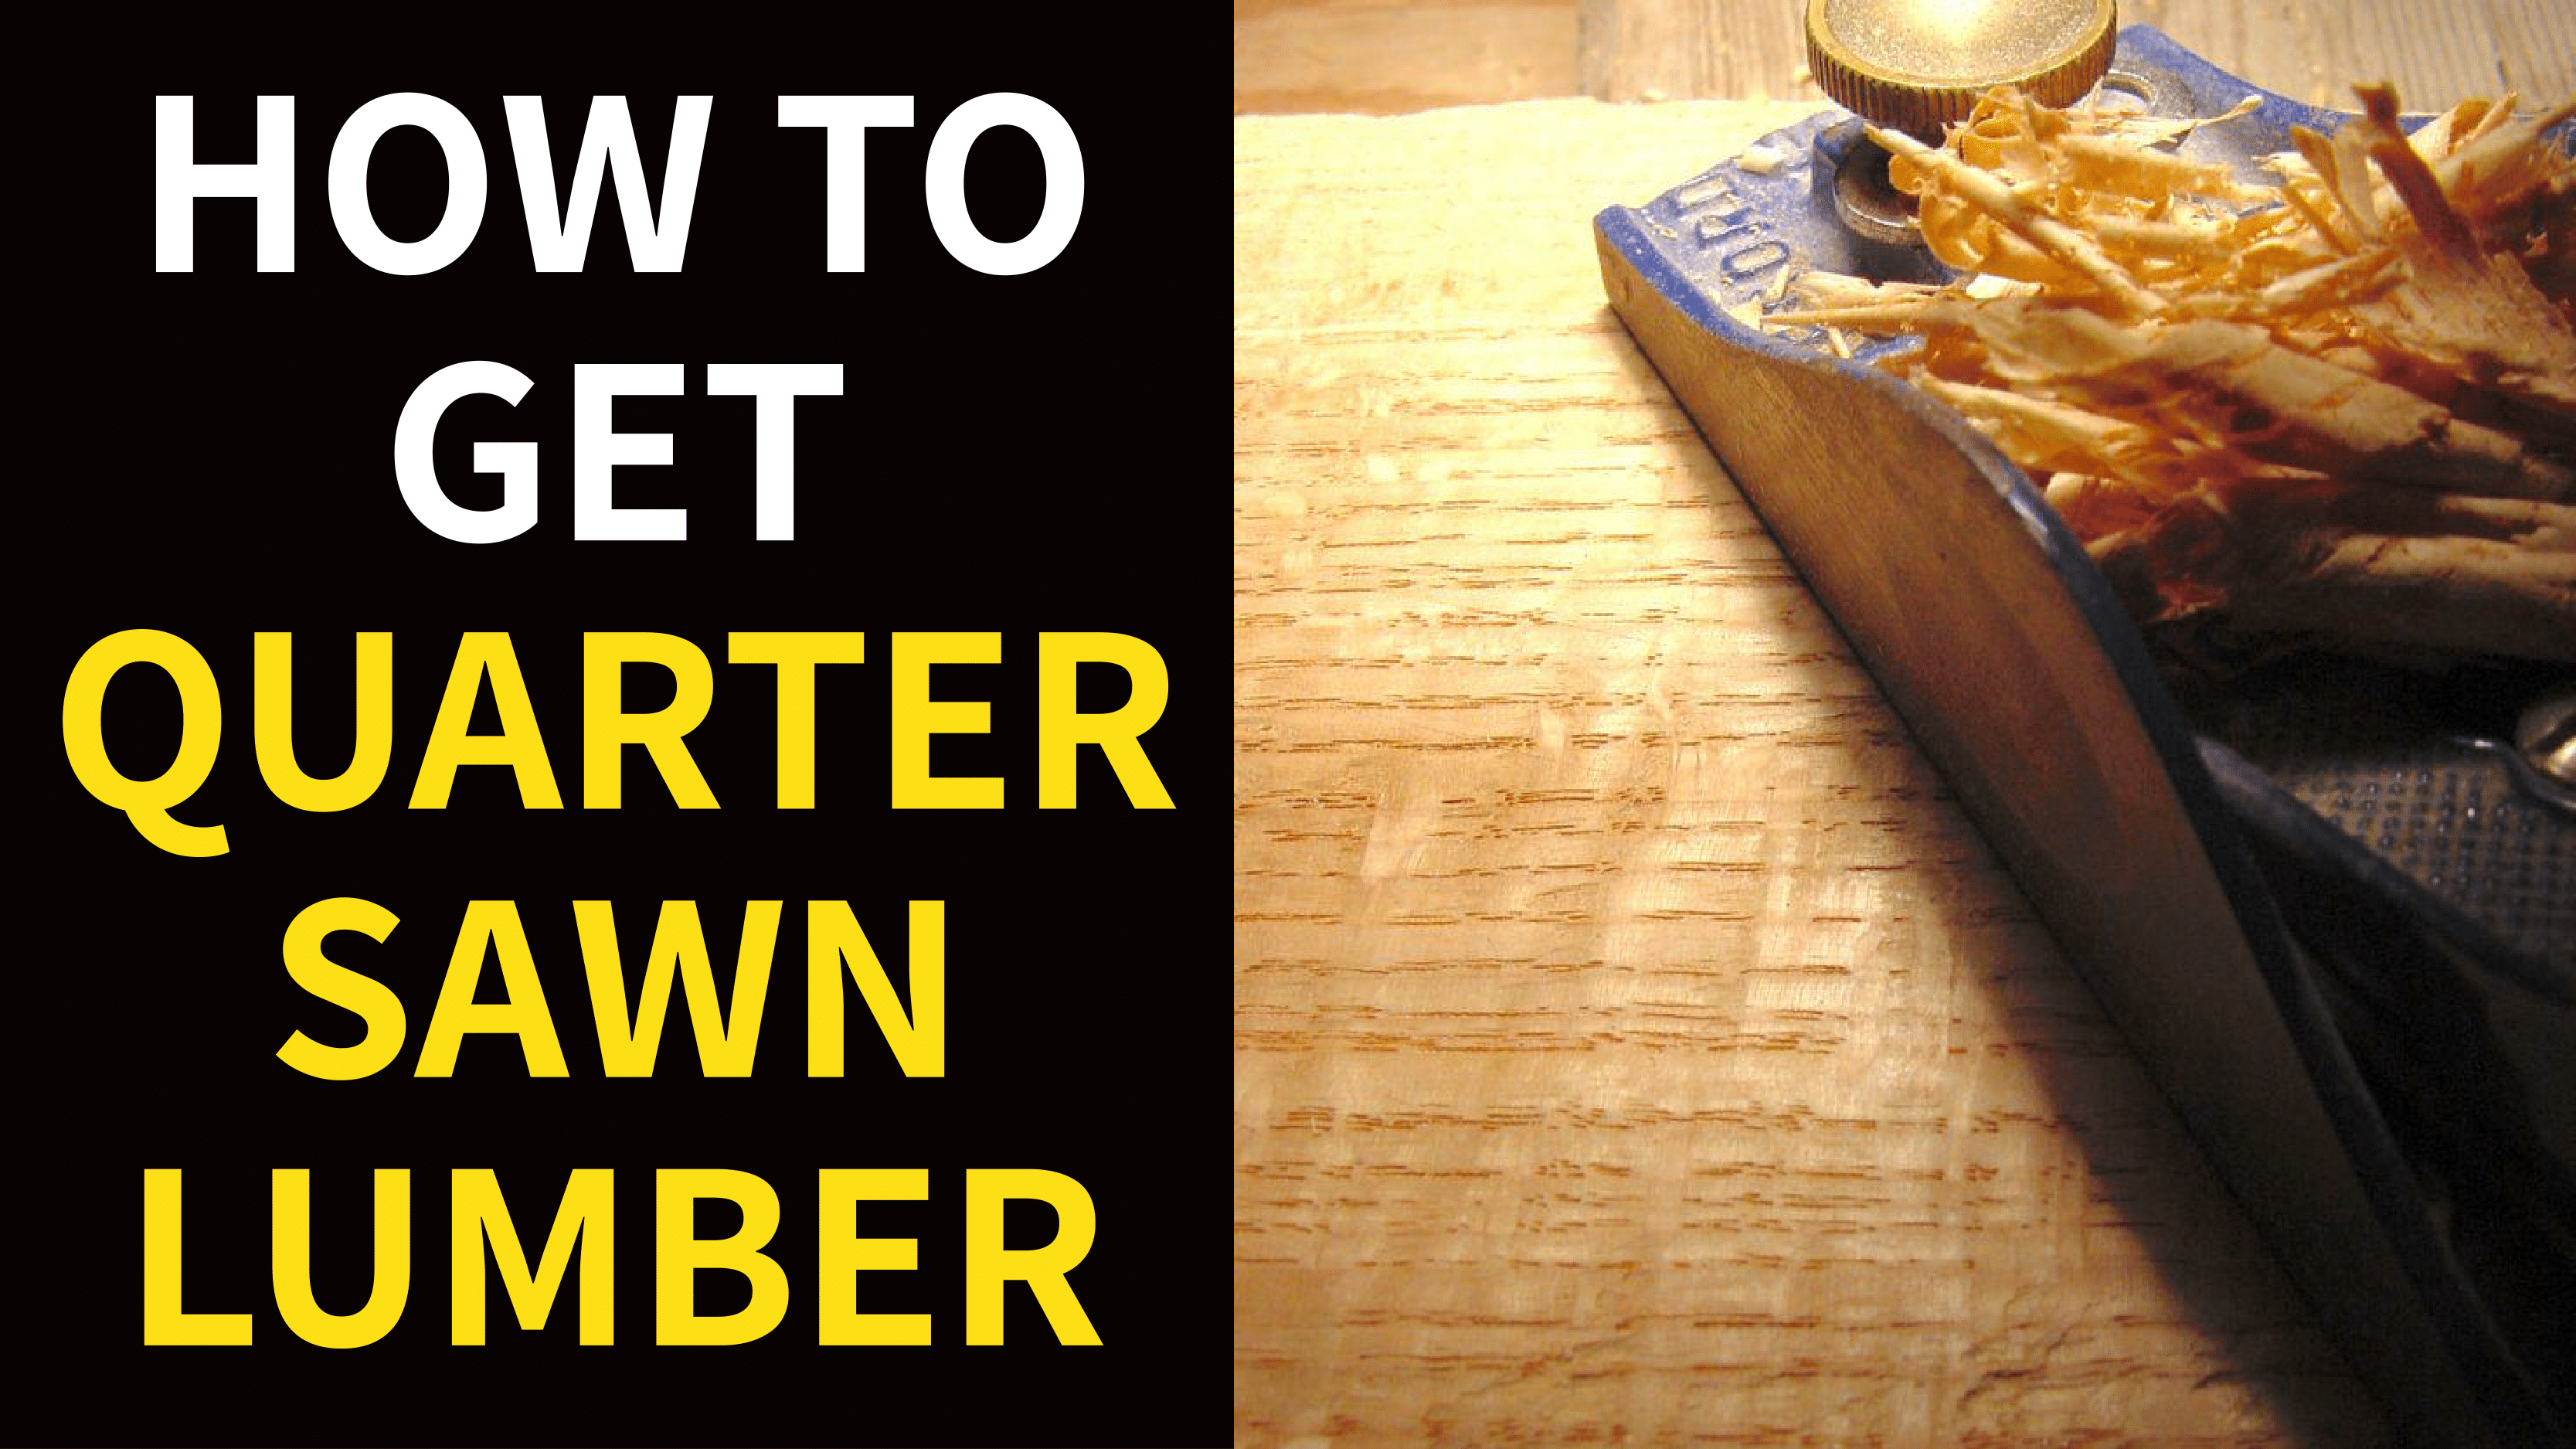 Quartersawn Lumber How To A Get It For Your Next Woodworking Project With Images Building A Workbench Lumber Woodworking